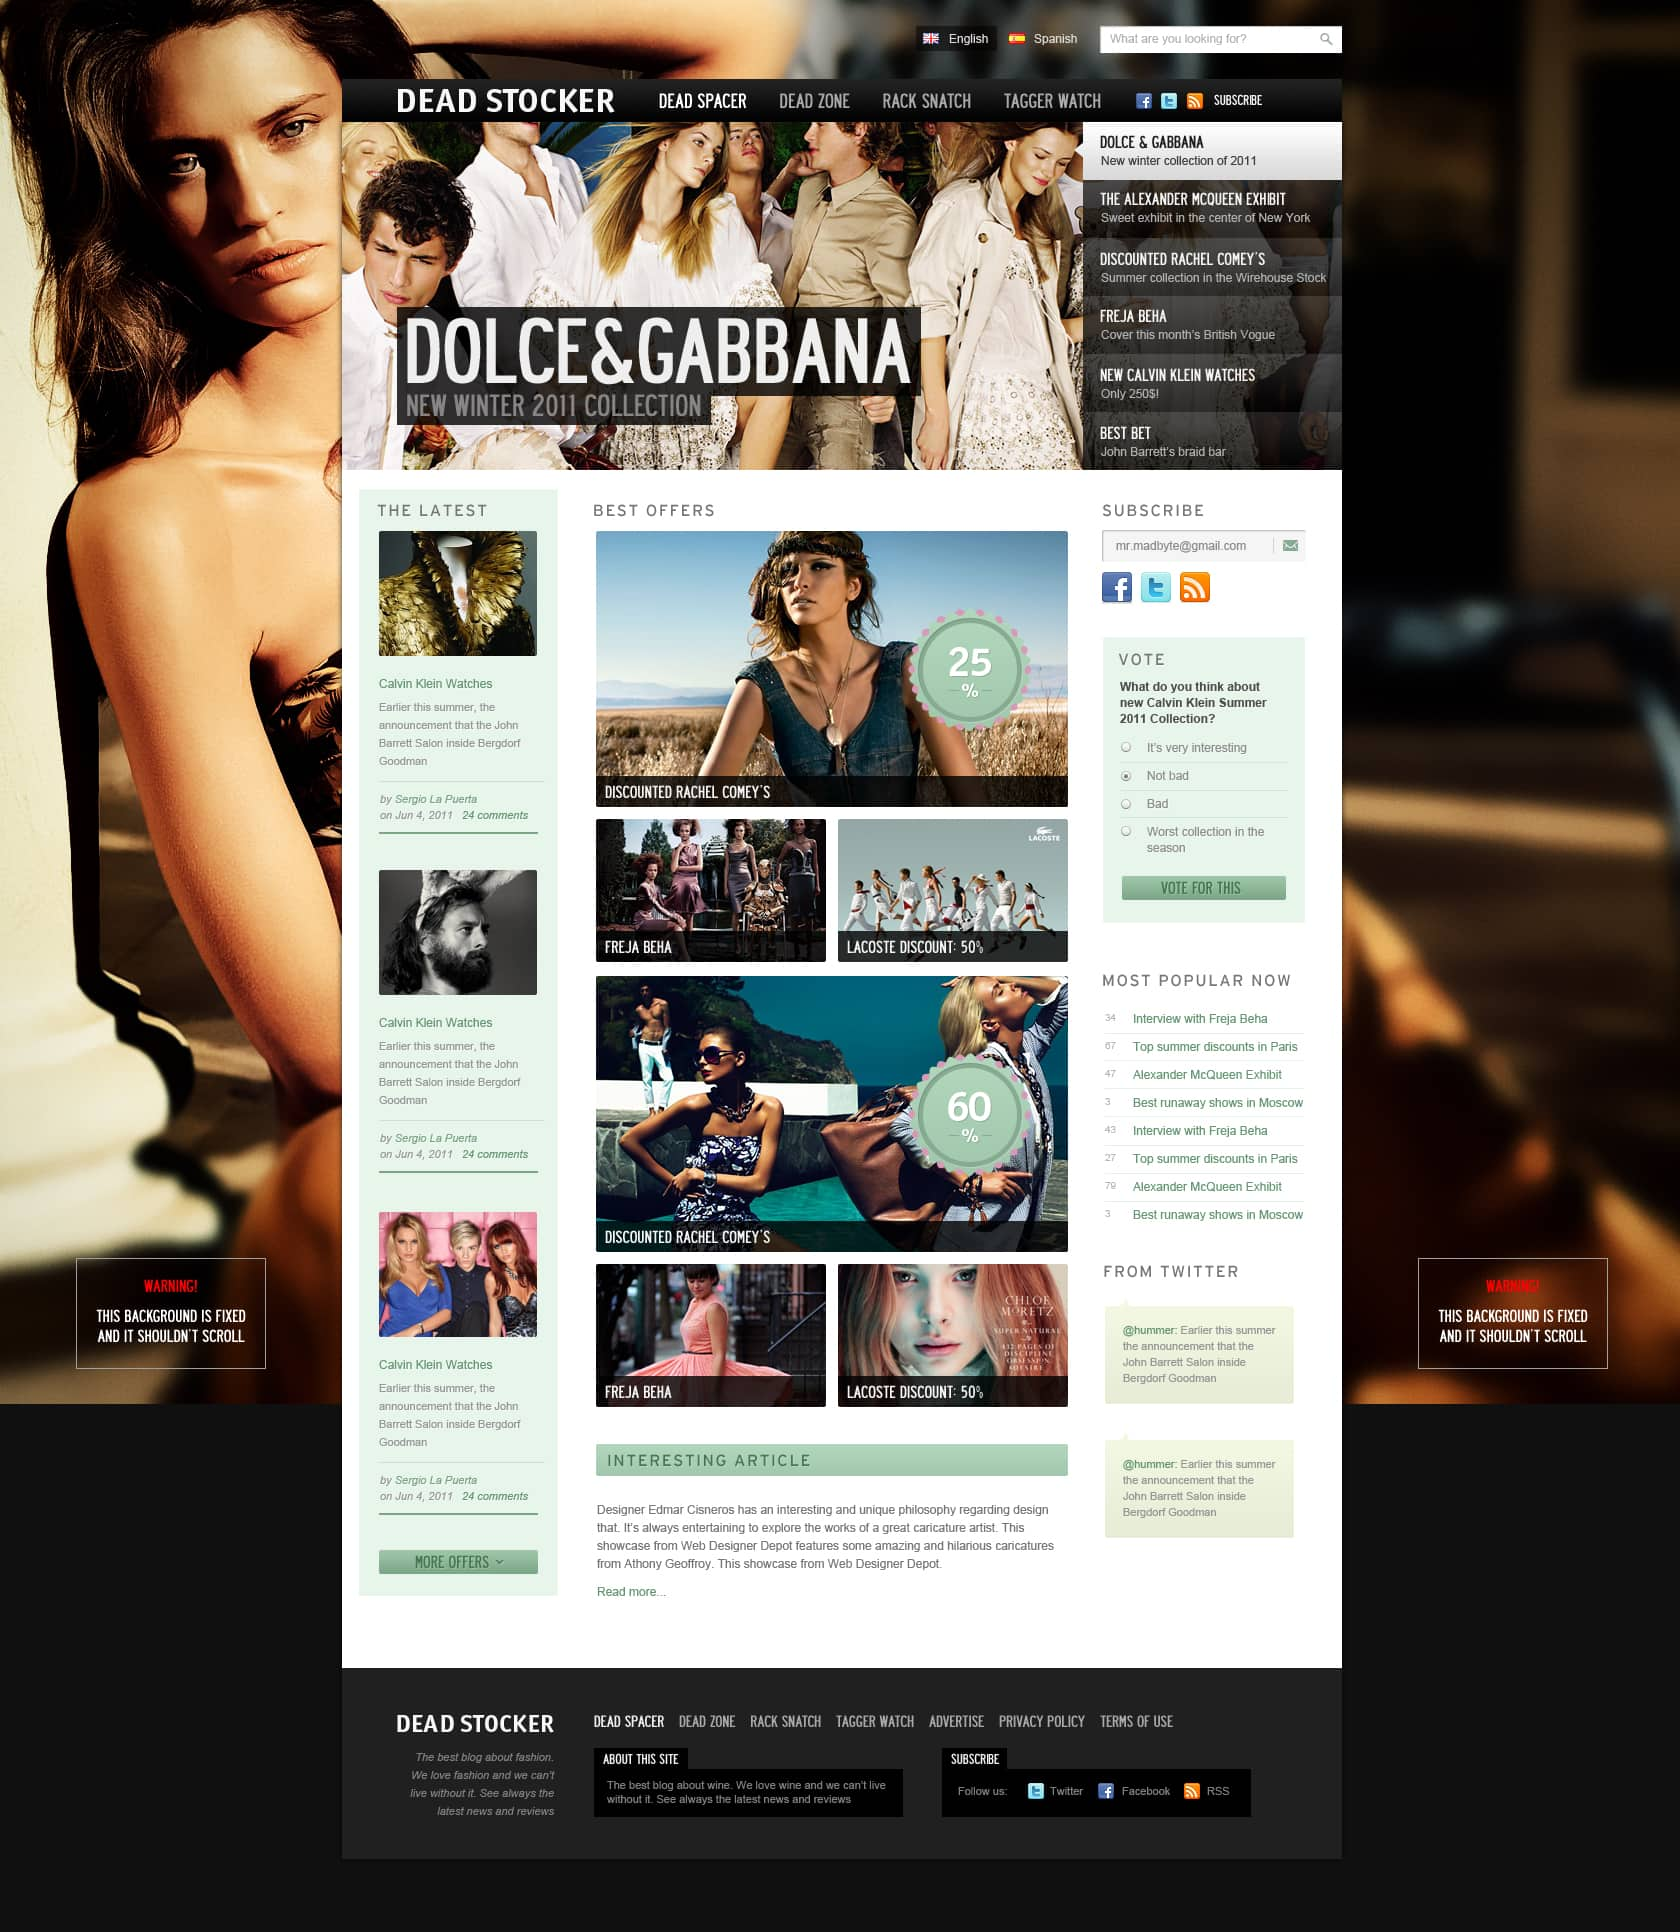 Dead Stocker Fashion Free Psd Website Template